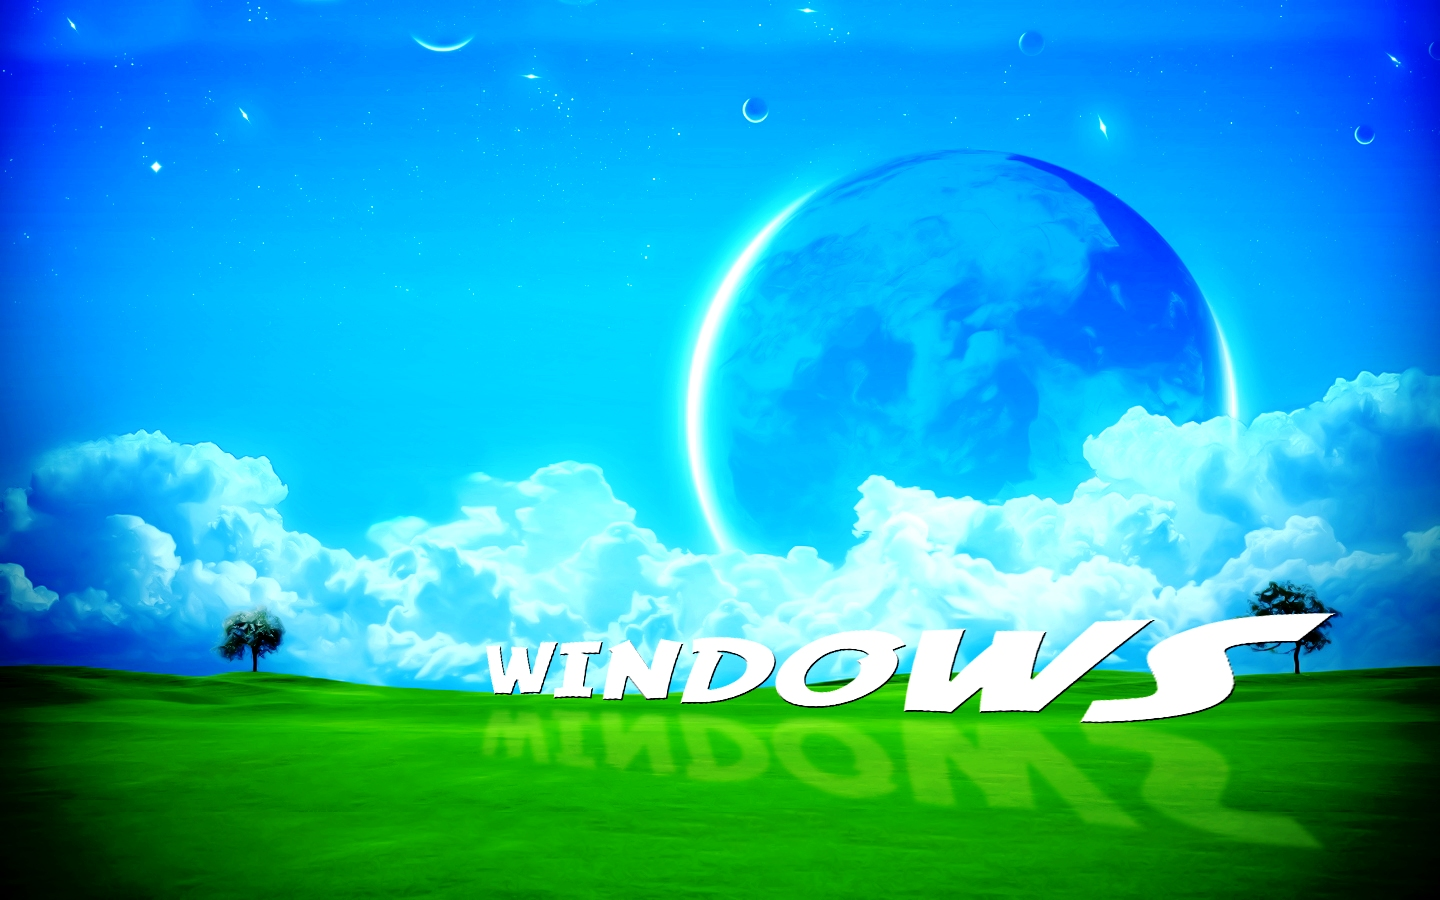 Free-Animated-Desktop-Backgrounds-For-Xp-Windows-wallpaper-wpc9005126